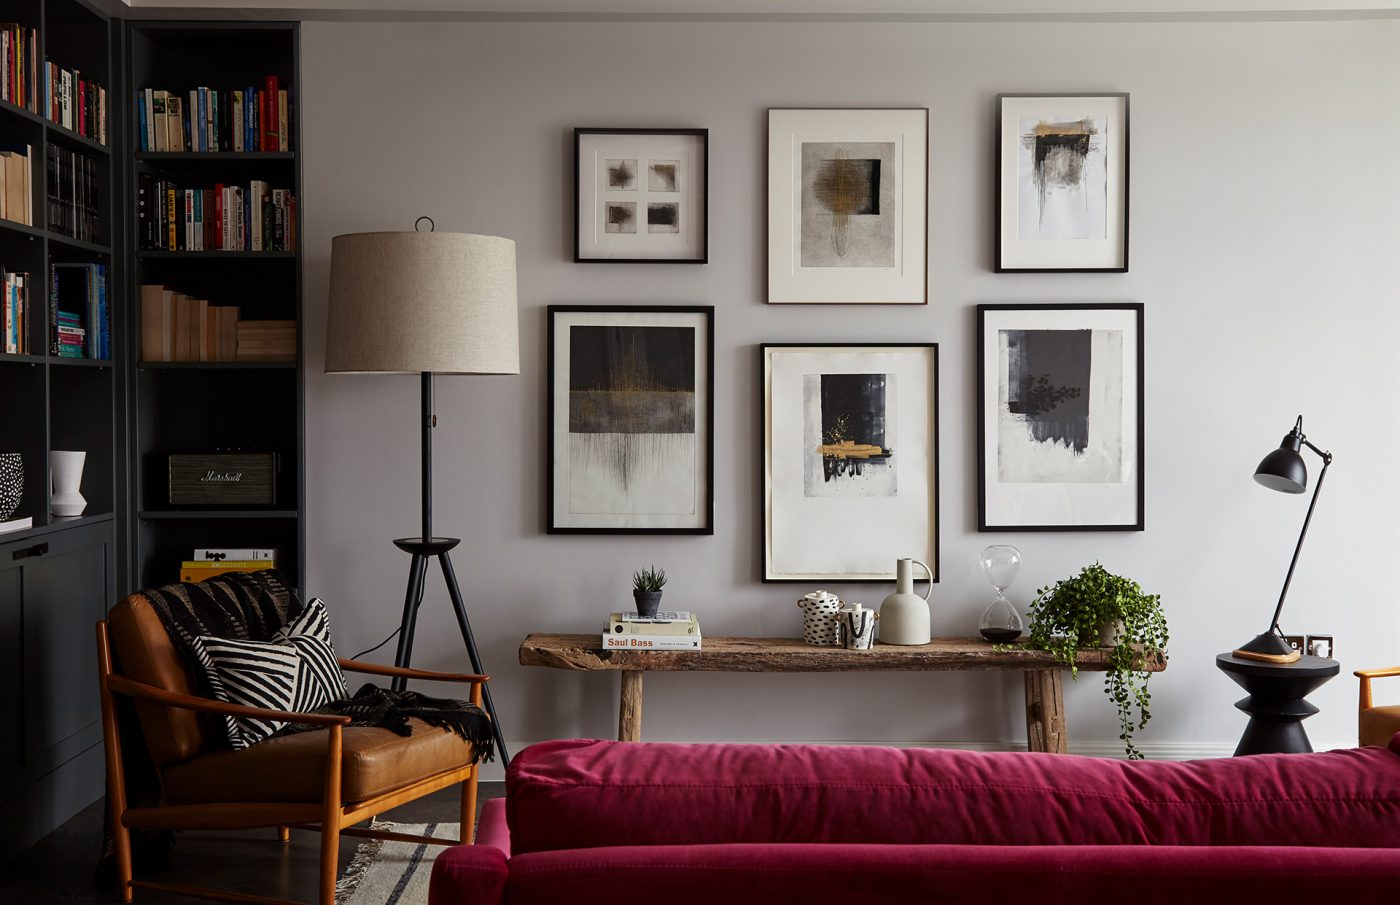 contemporary living room art english country rooms images regents park london apartment interiors design anna burles fresh cool modern frames wall rustic bench red couch armchair